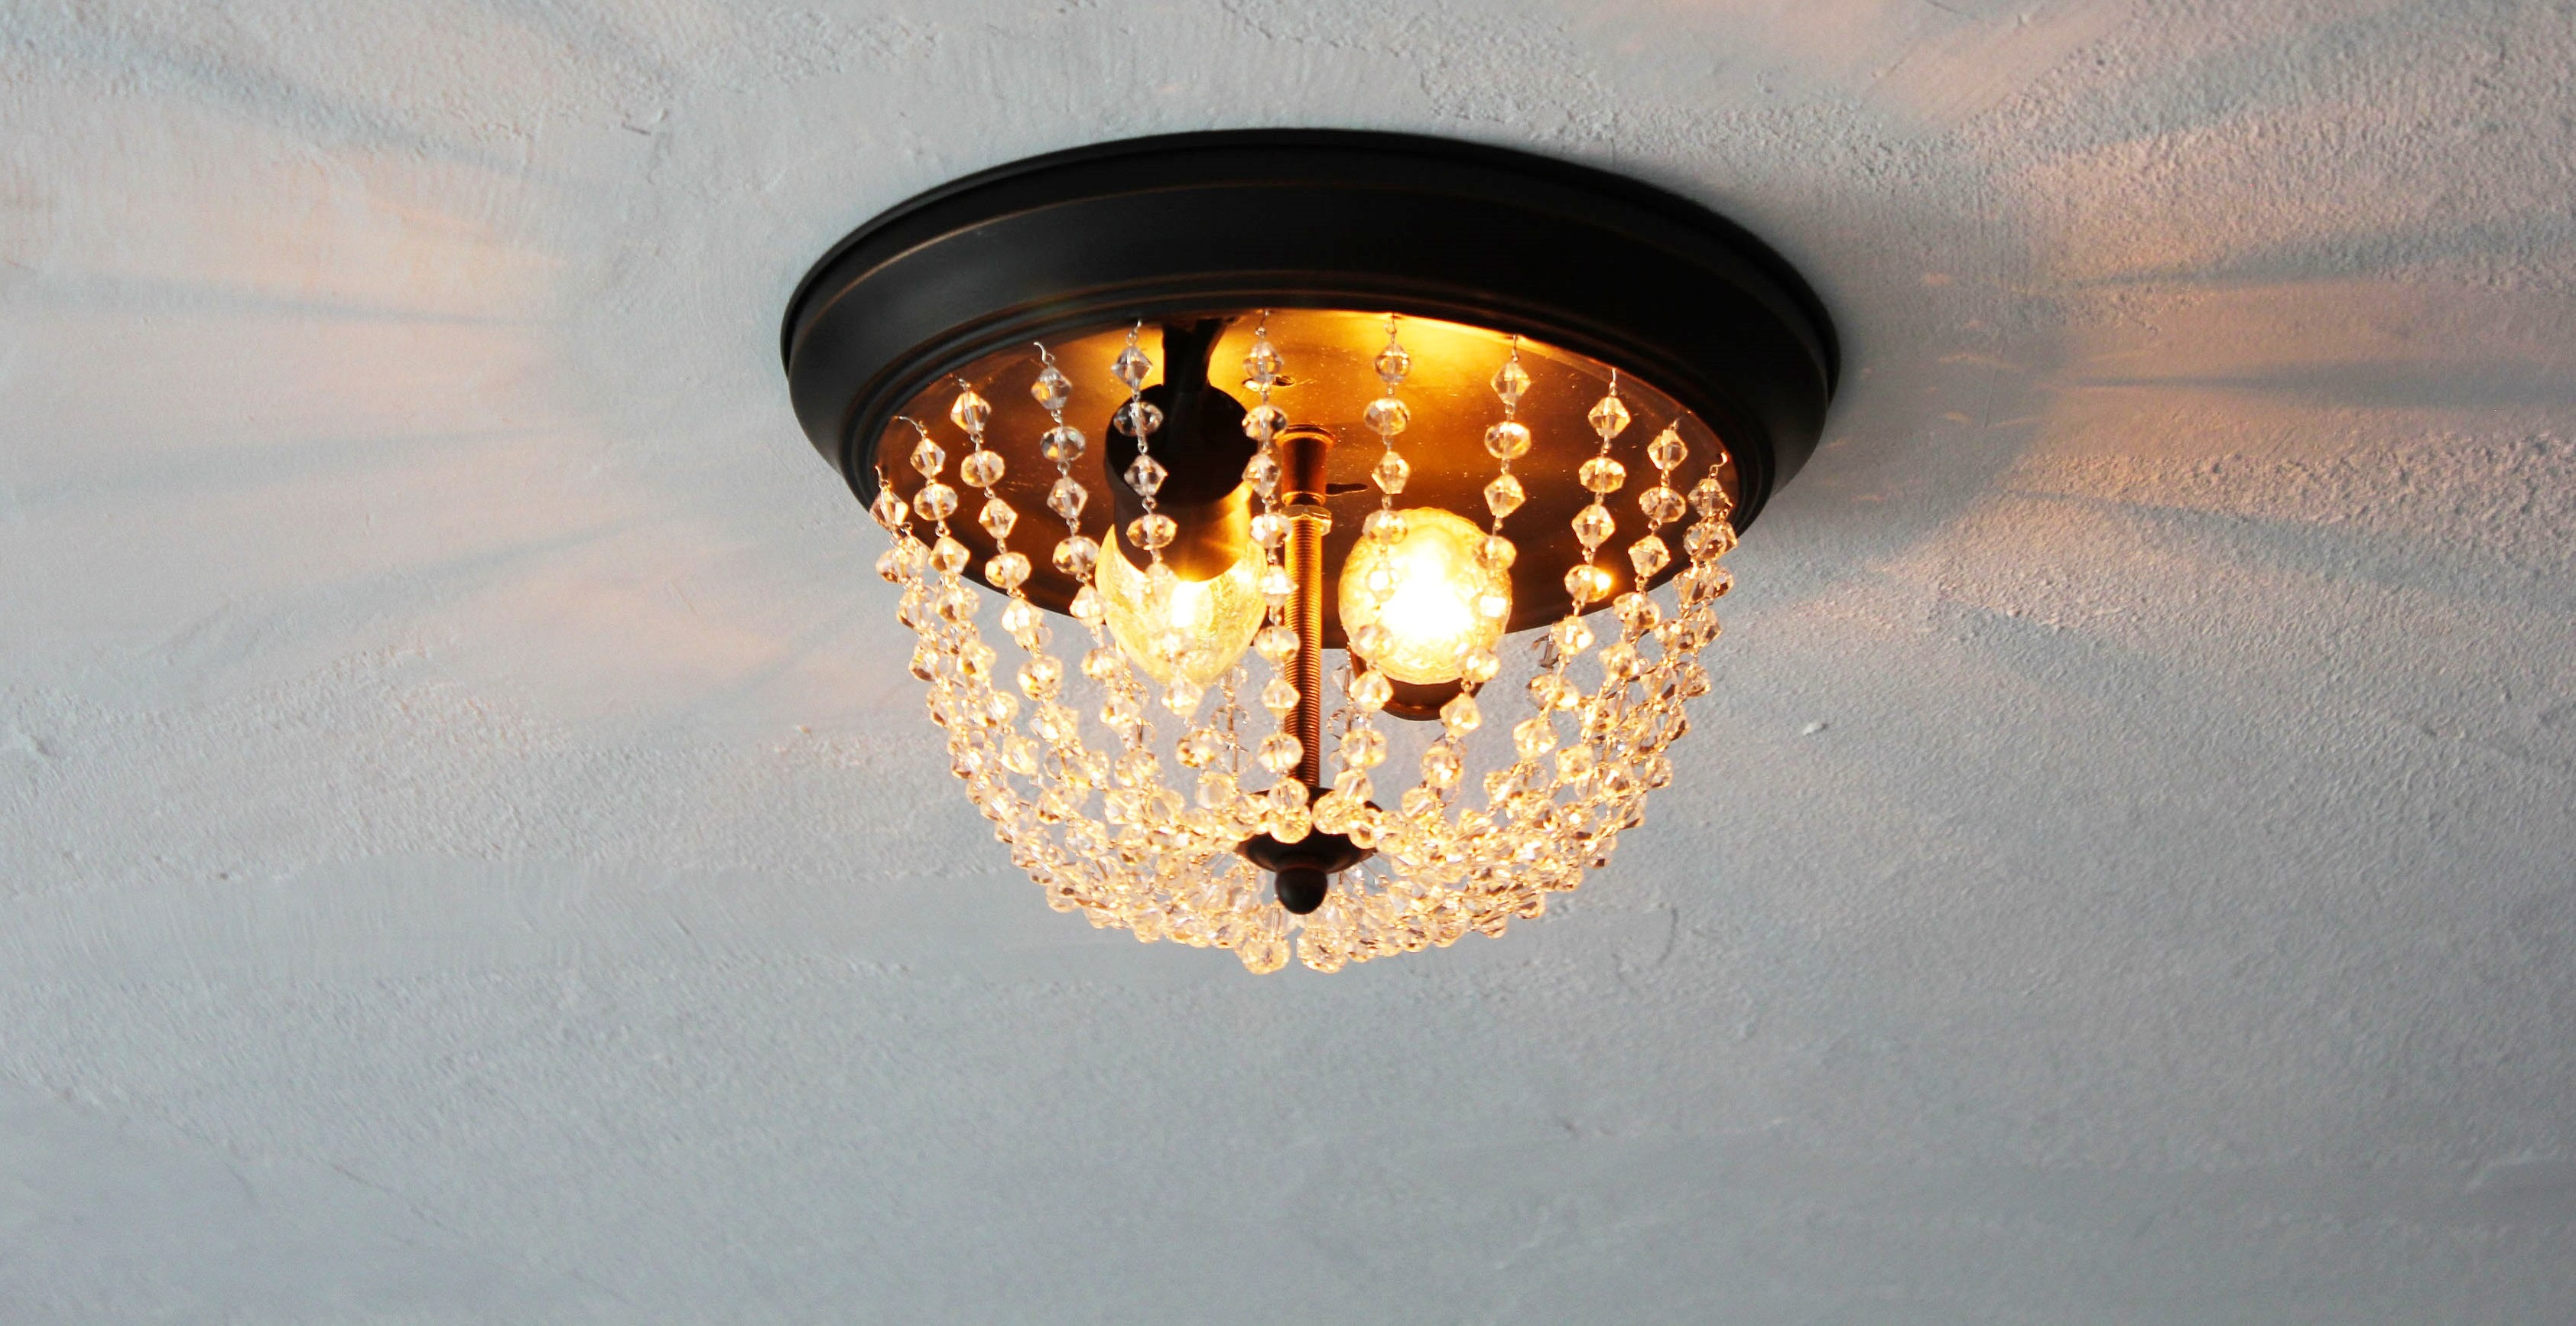 light lowes kits lighting and wiring bulbs chandeliers with fans me pictures glamorous small spacious lamp base chandelier crystal near remote ceiling fan target kit top appealing lights